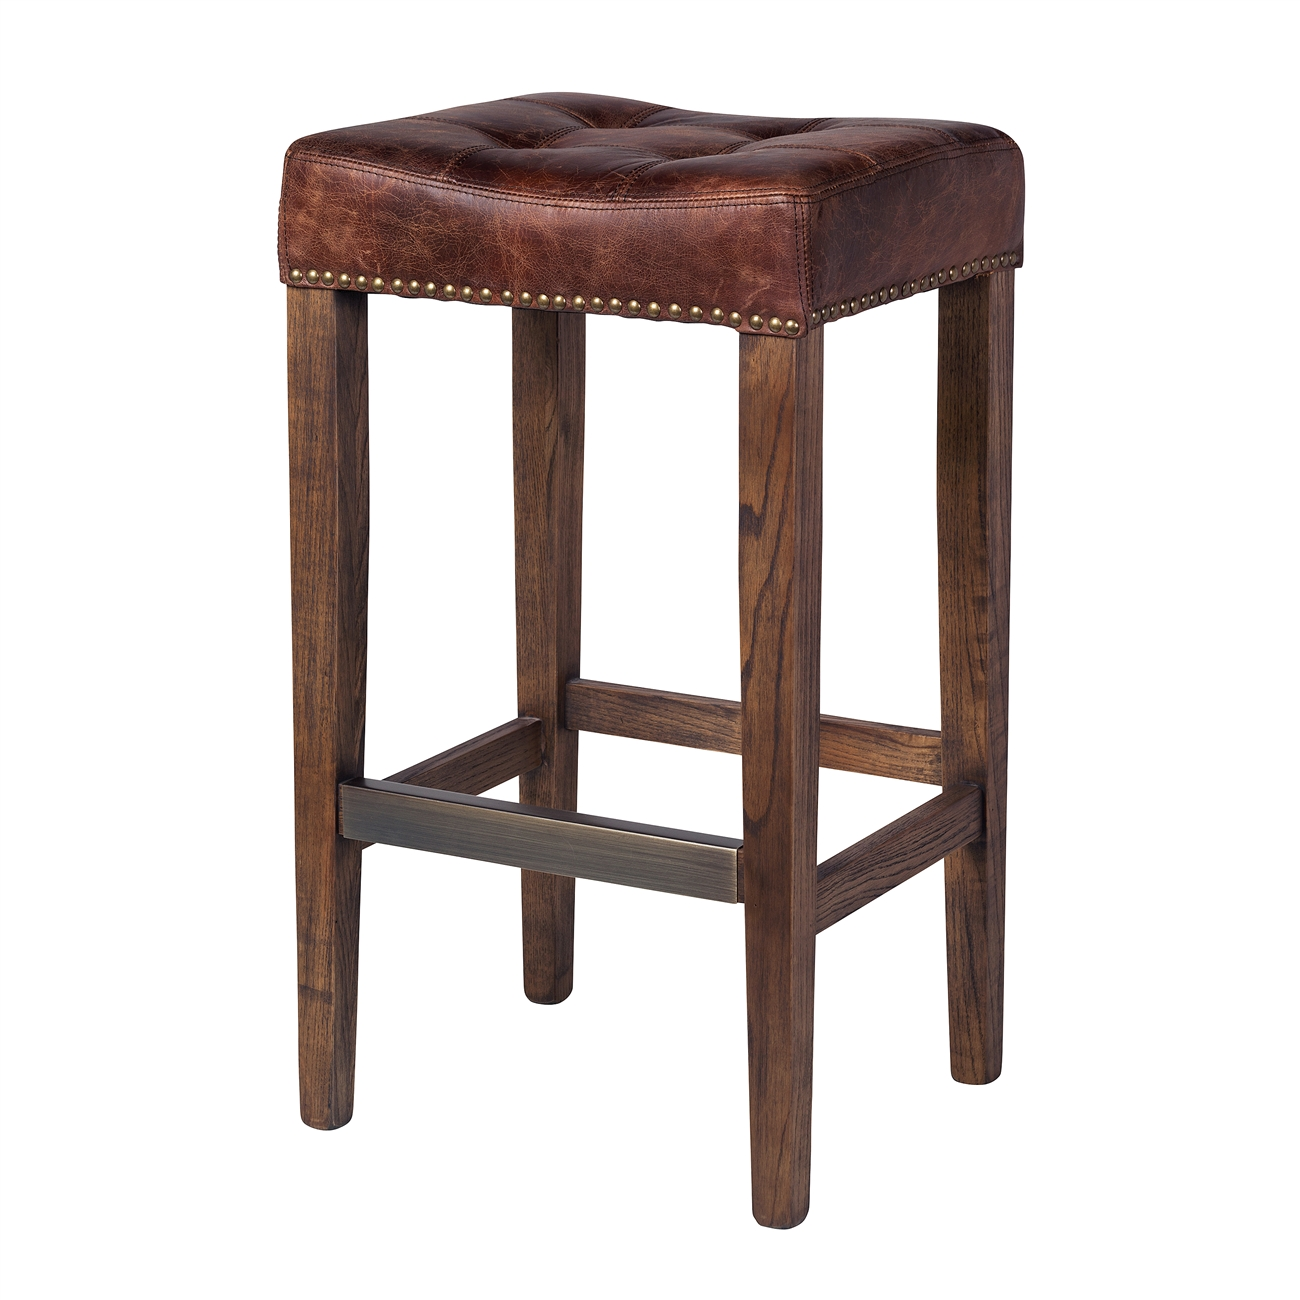 Lovely Tufted Leather Bar Stools